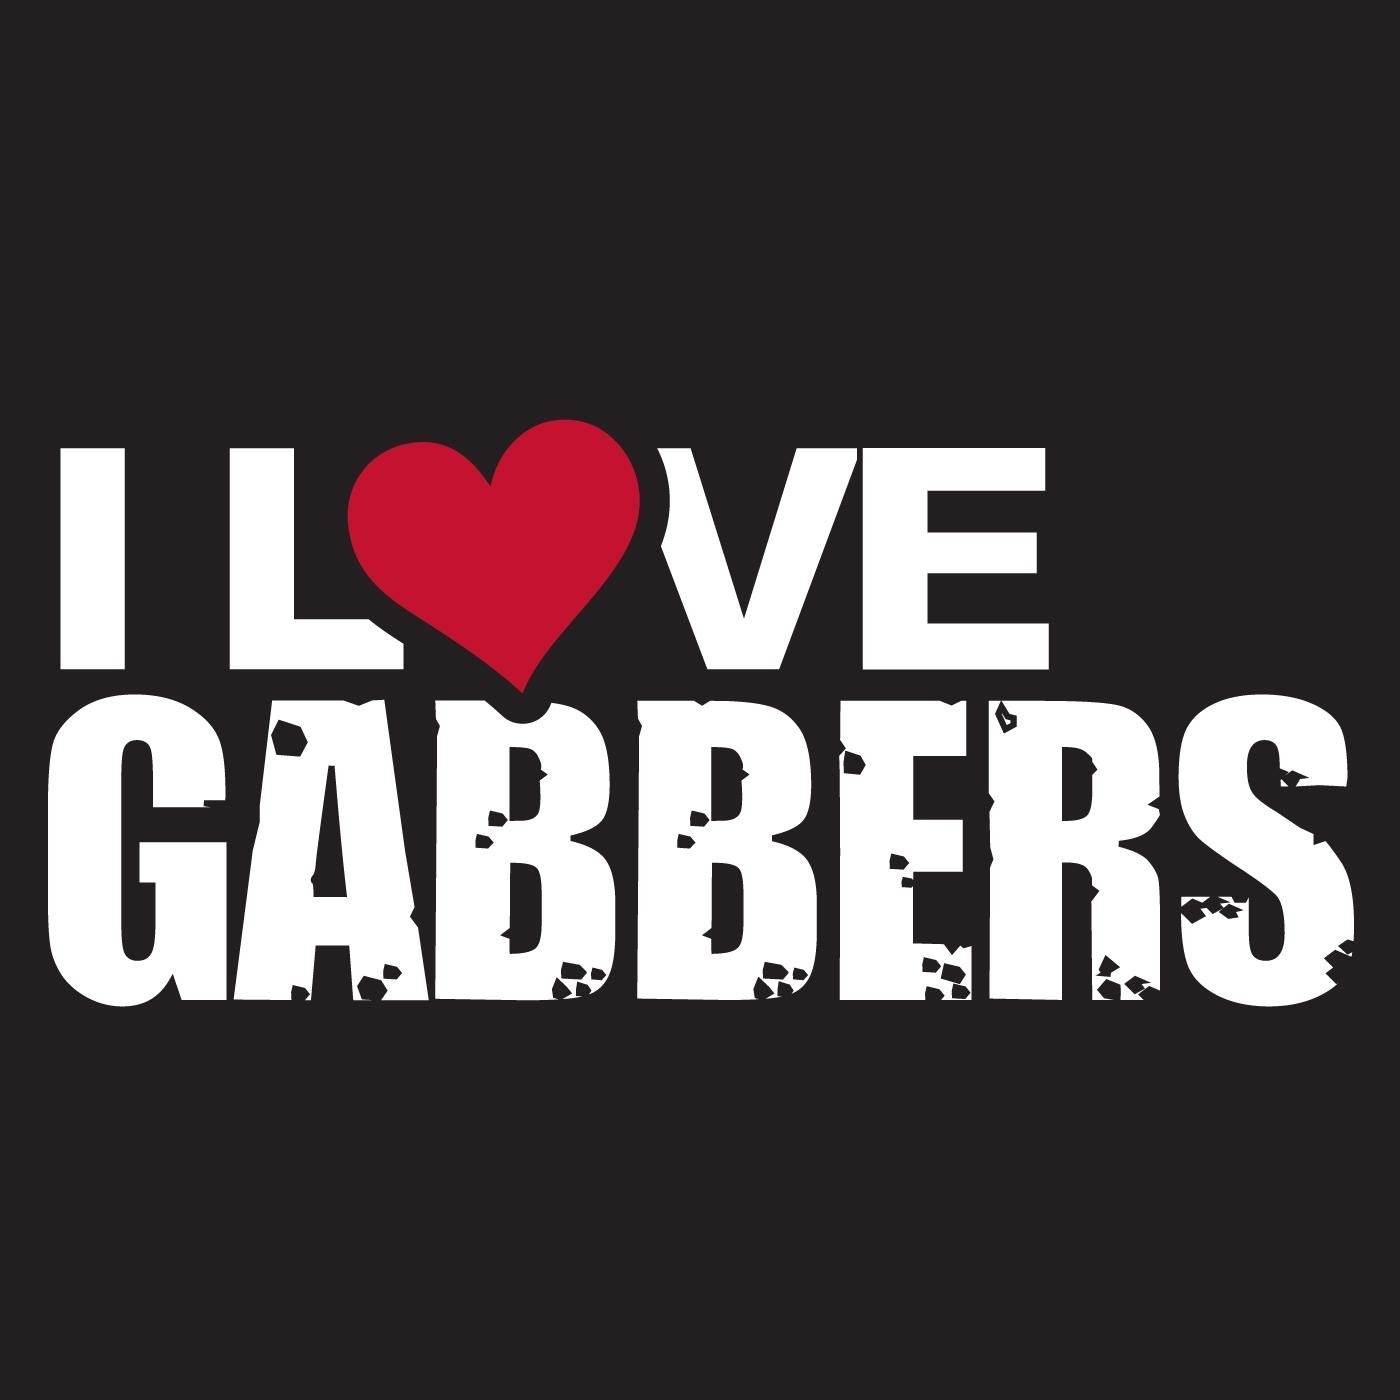 I Love Gabbers Sticker Ilovegabstick Sticker Rigeshop